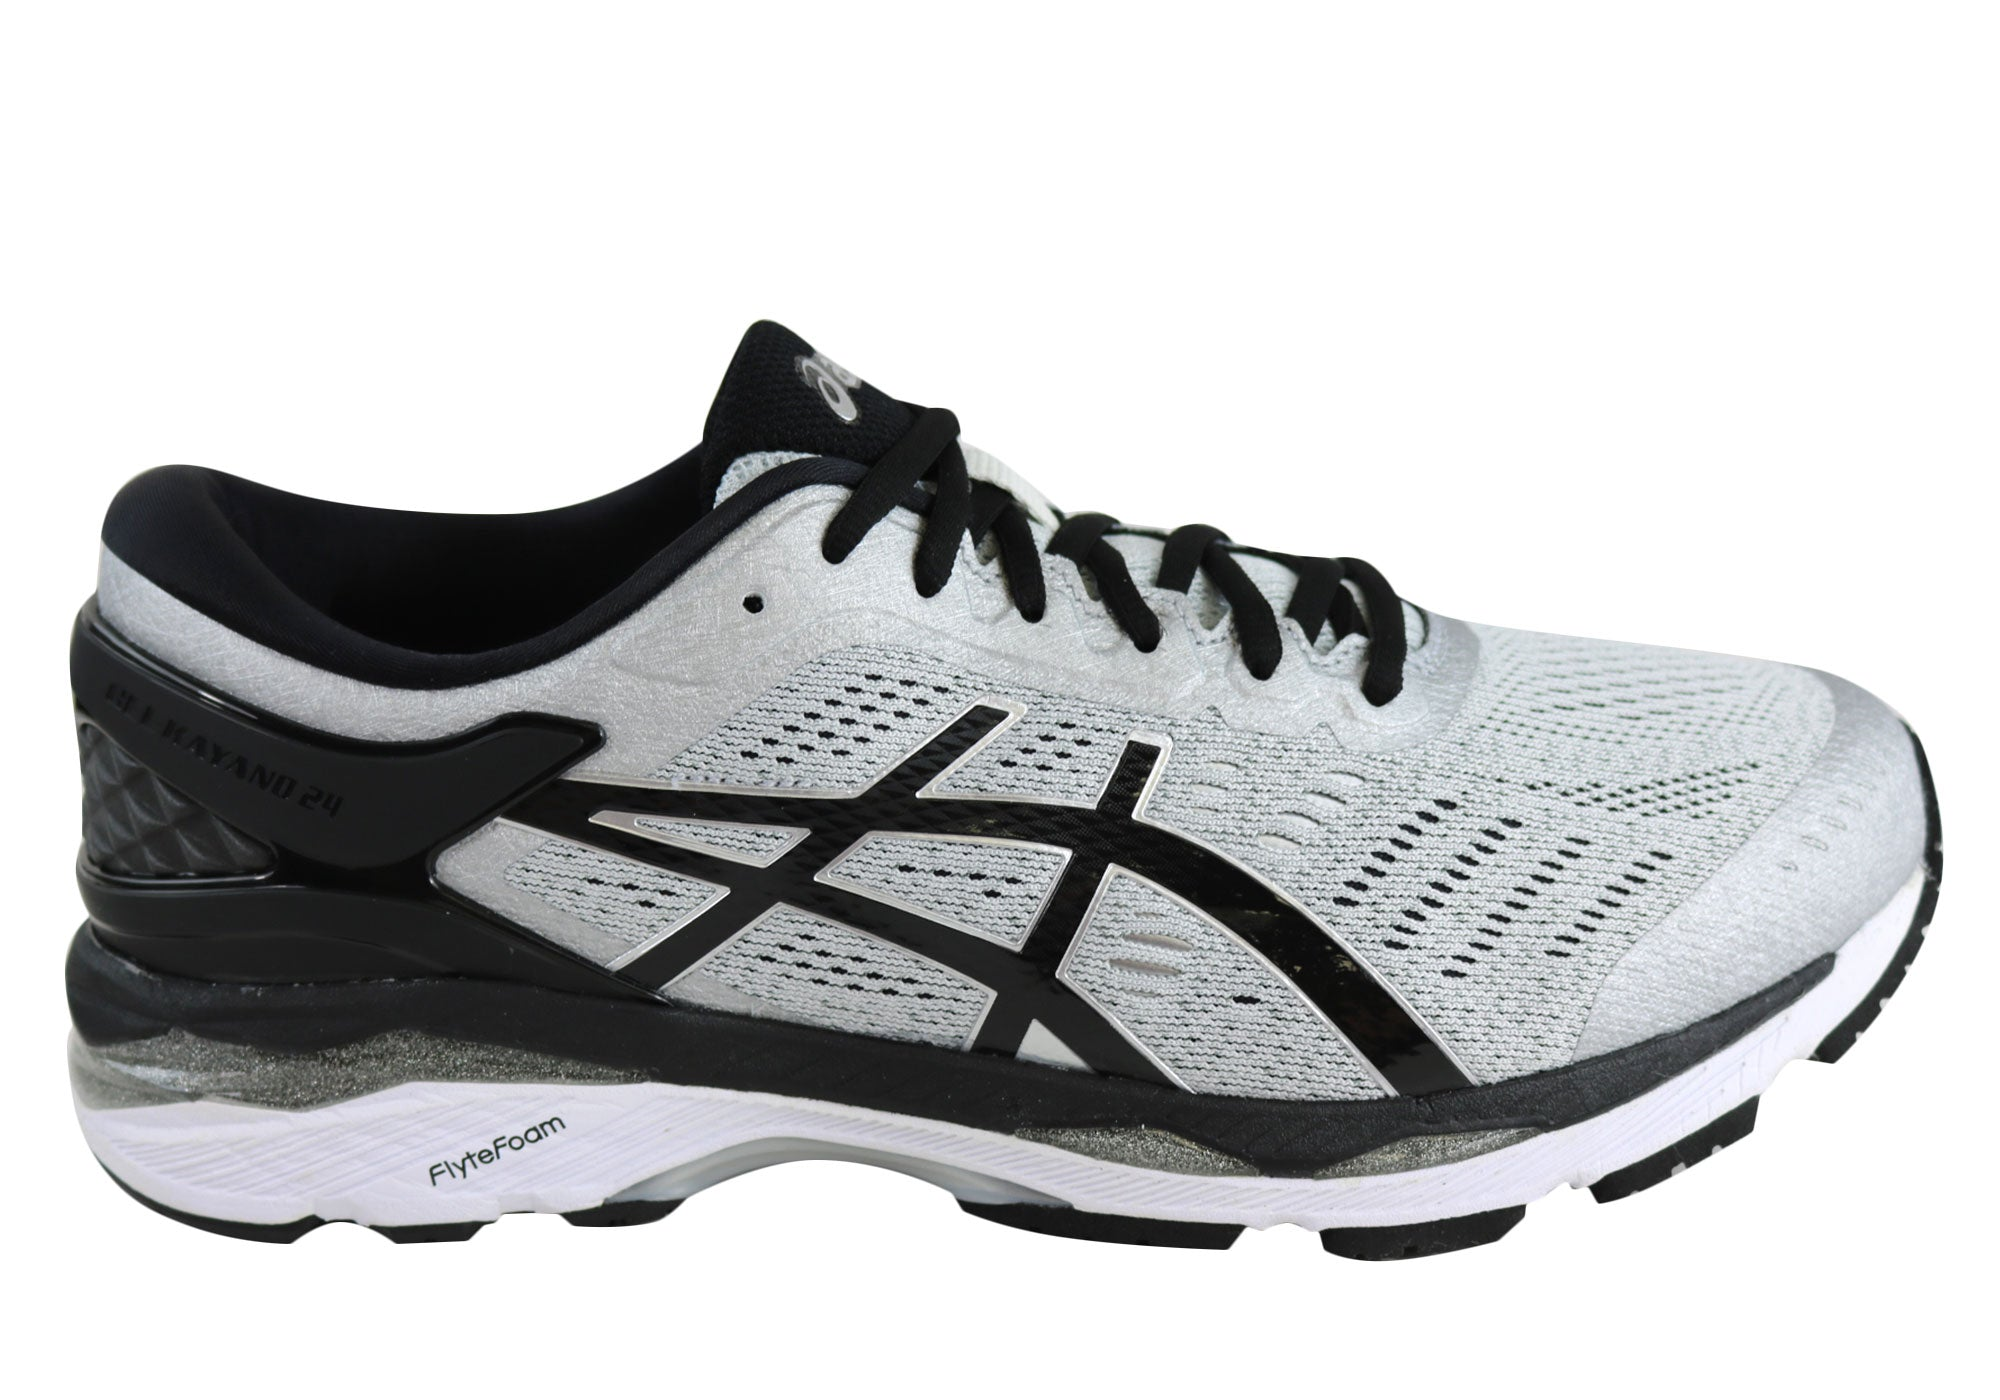 110fb8071982 Asics Gel Kayano 24 Mens Running Sport Shoes (4E Extra Wide Width ...